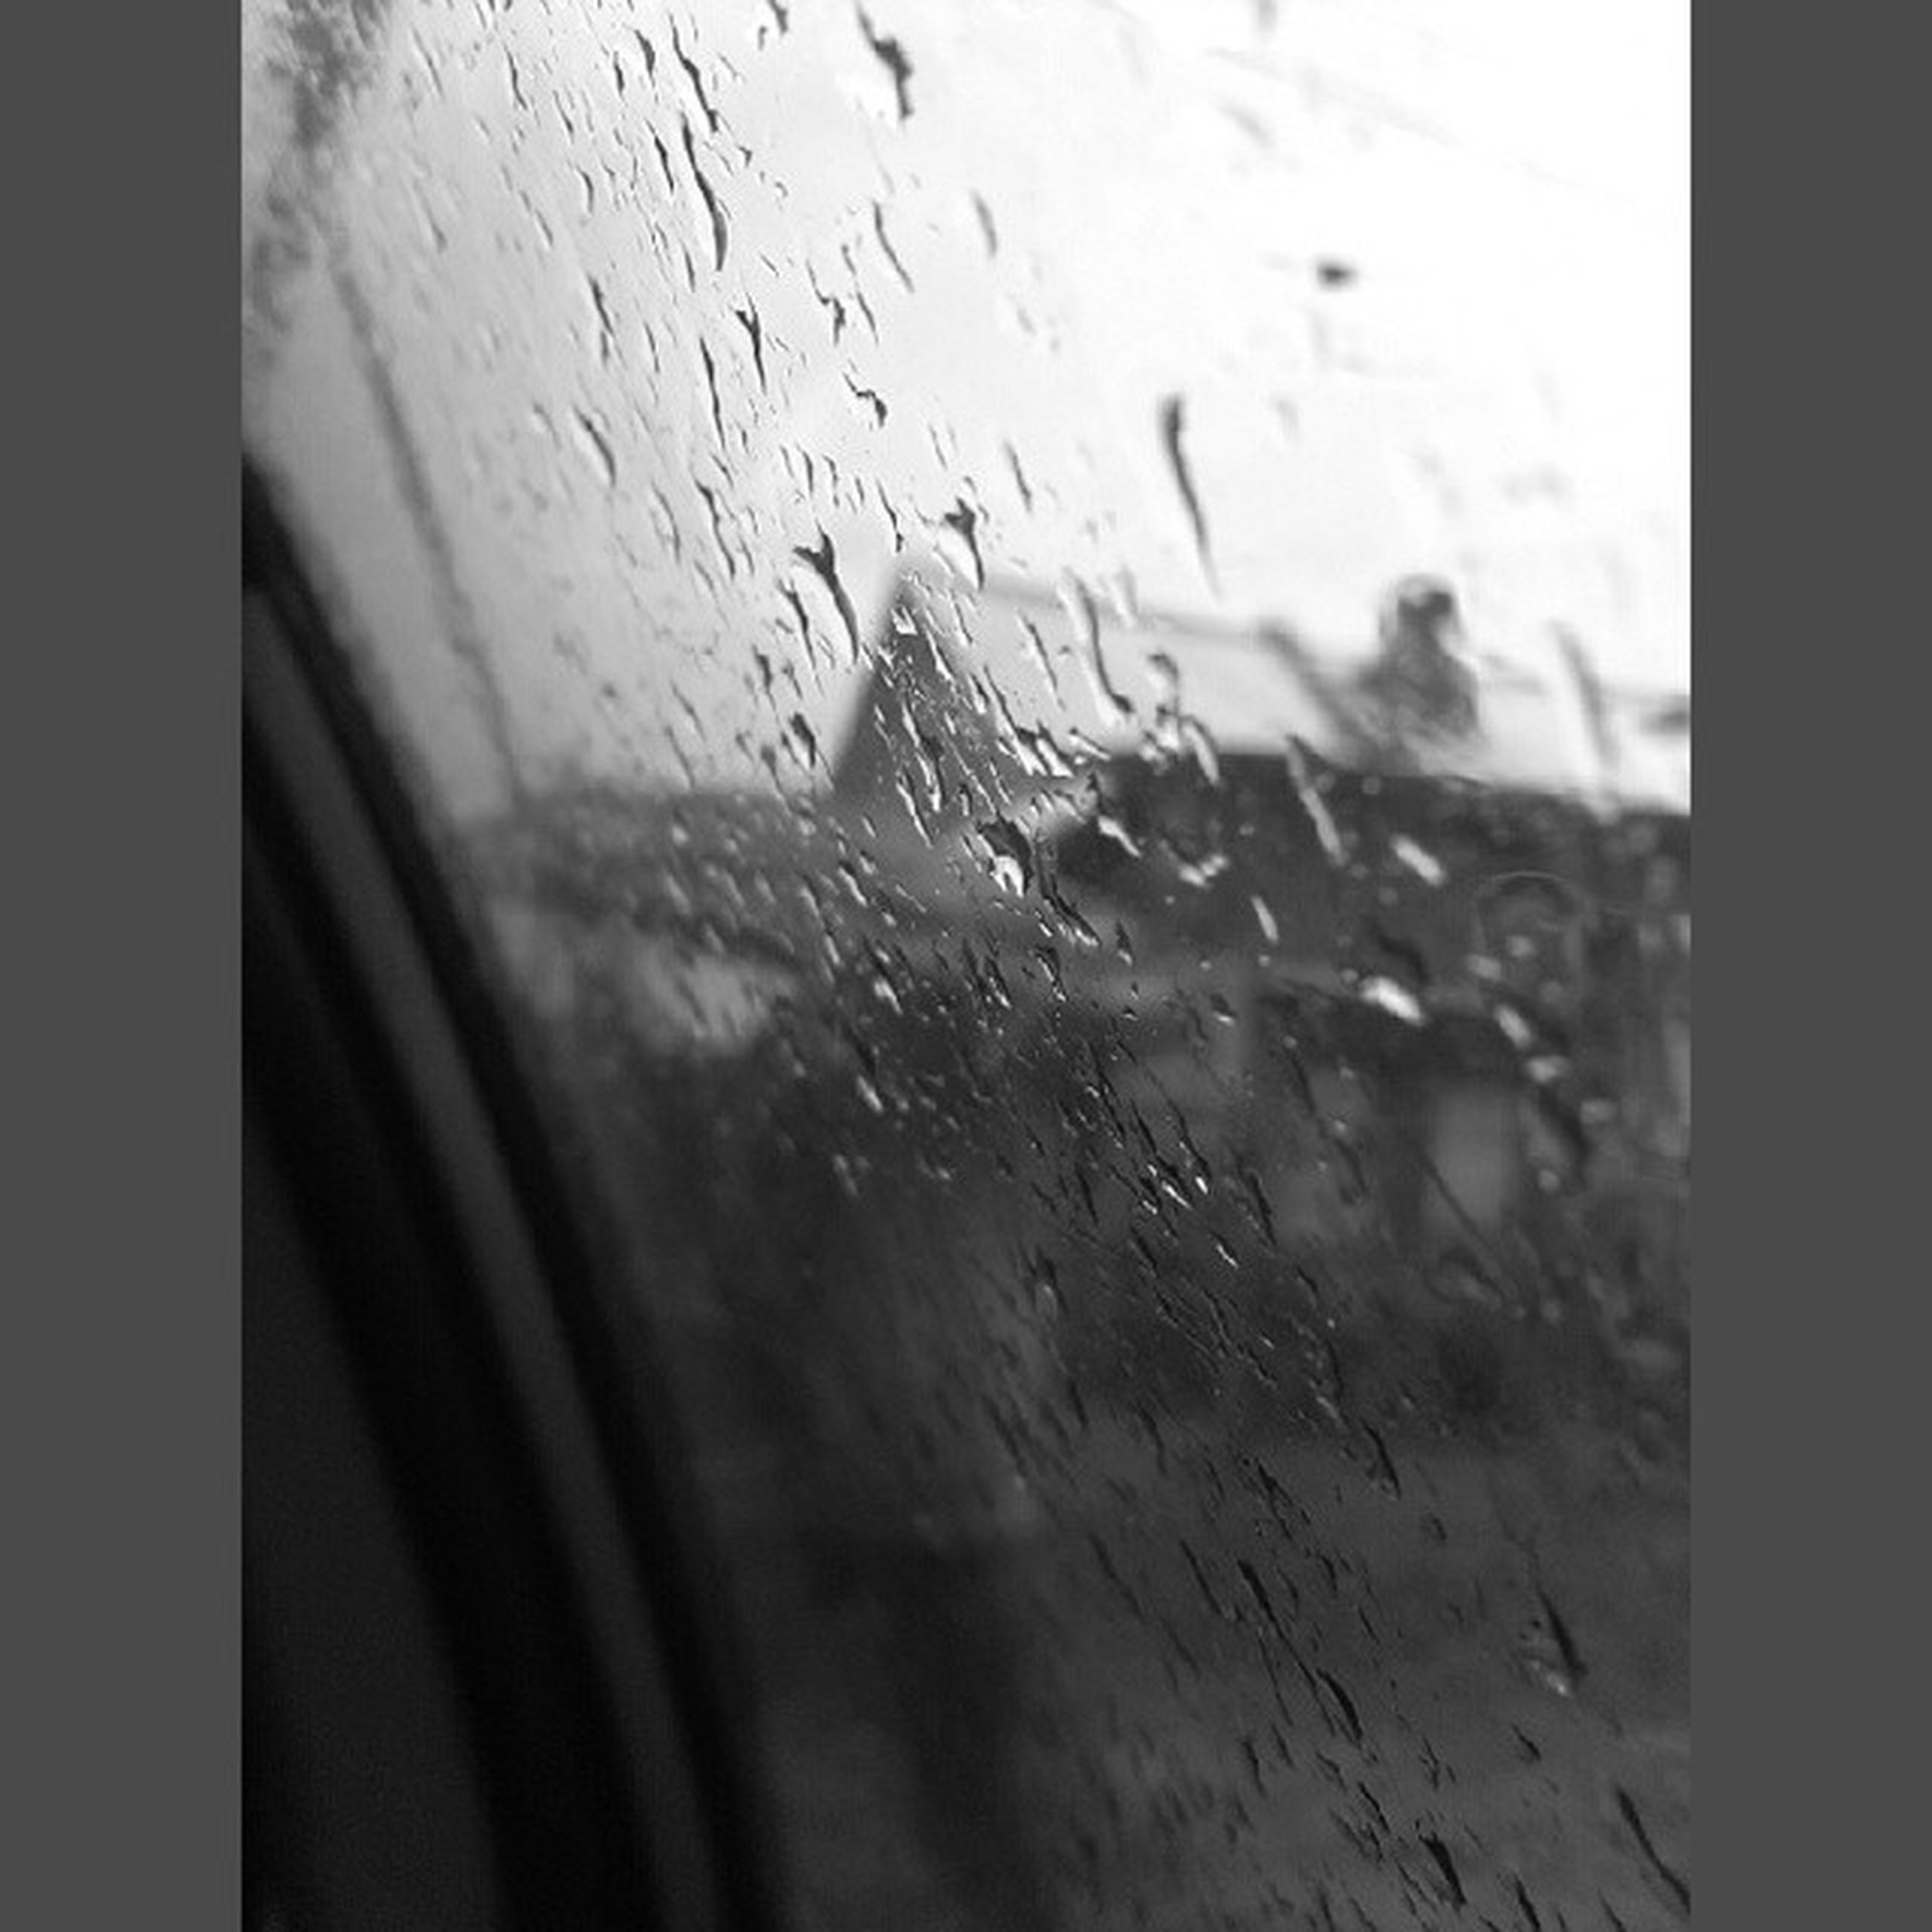 transparent, window, glass - material, indoors, drop, wet, water, glass, close-up, rain, vehicle interior, raindrop, looking through window, focus on foreground, transportation, weather, season, reflection, car, sky